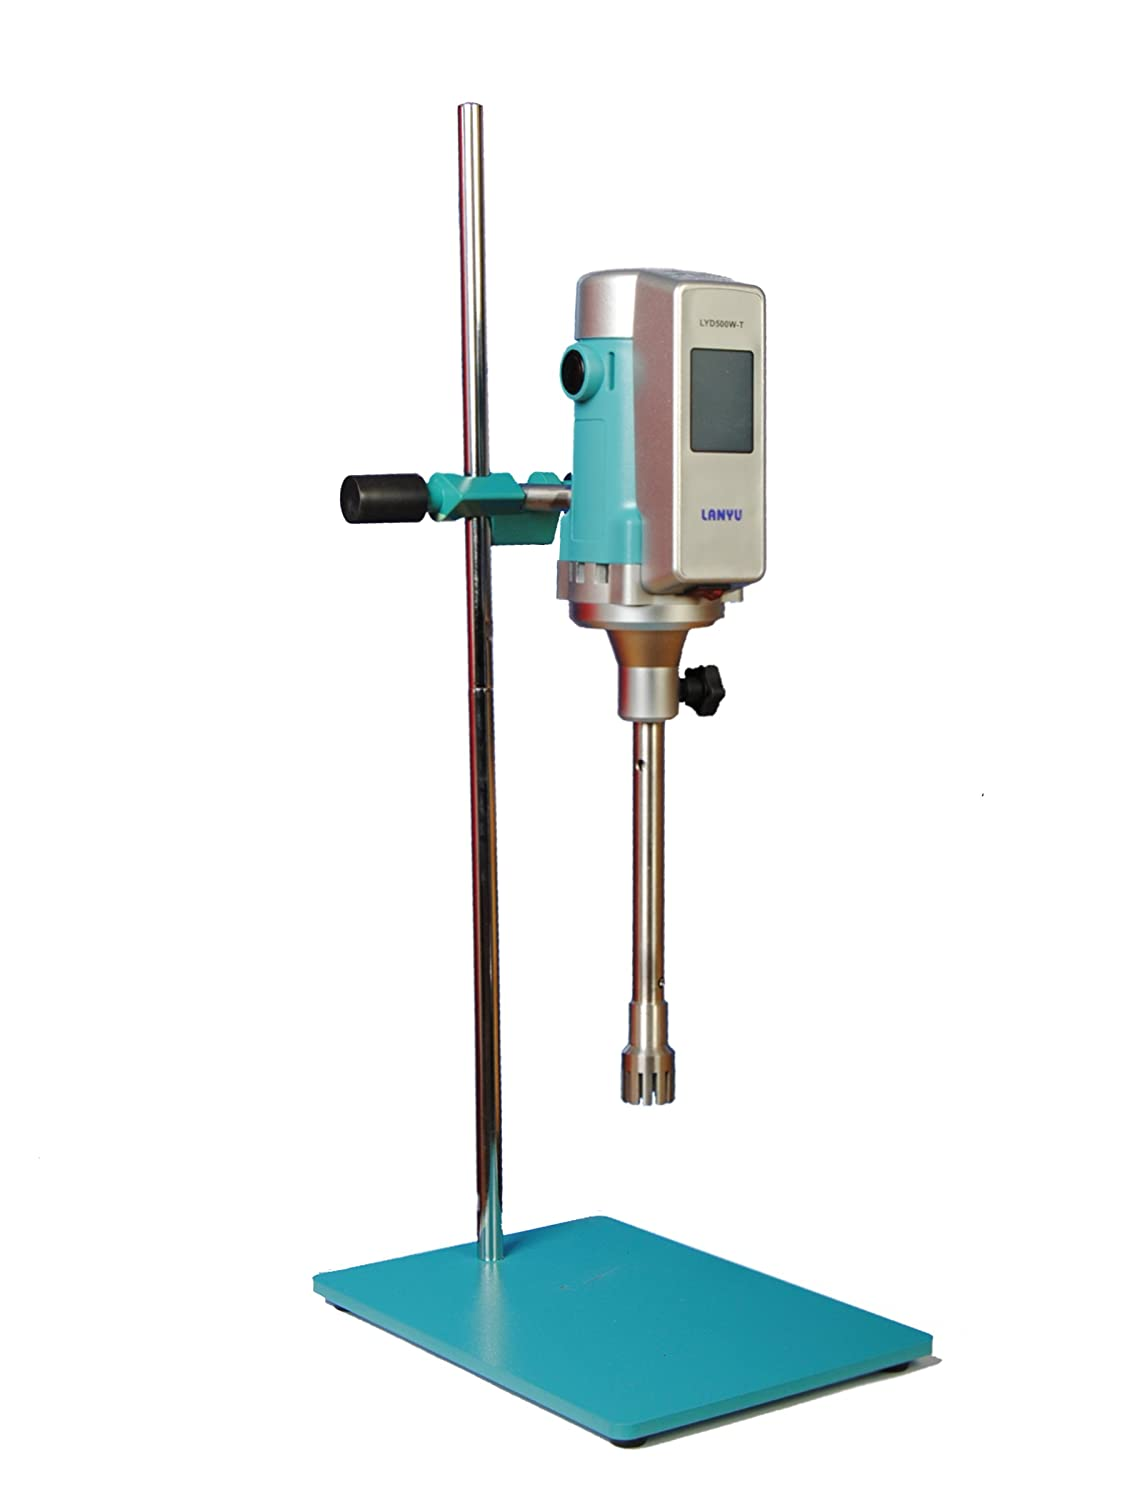 LYD500W-T High Shear Mixer Disperser Lab Homogenizer Dispersering Machine 850W 100028000 rpm Operating Head 36G AC100V  AC230V (220V) B071F8G6WW